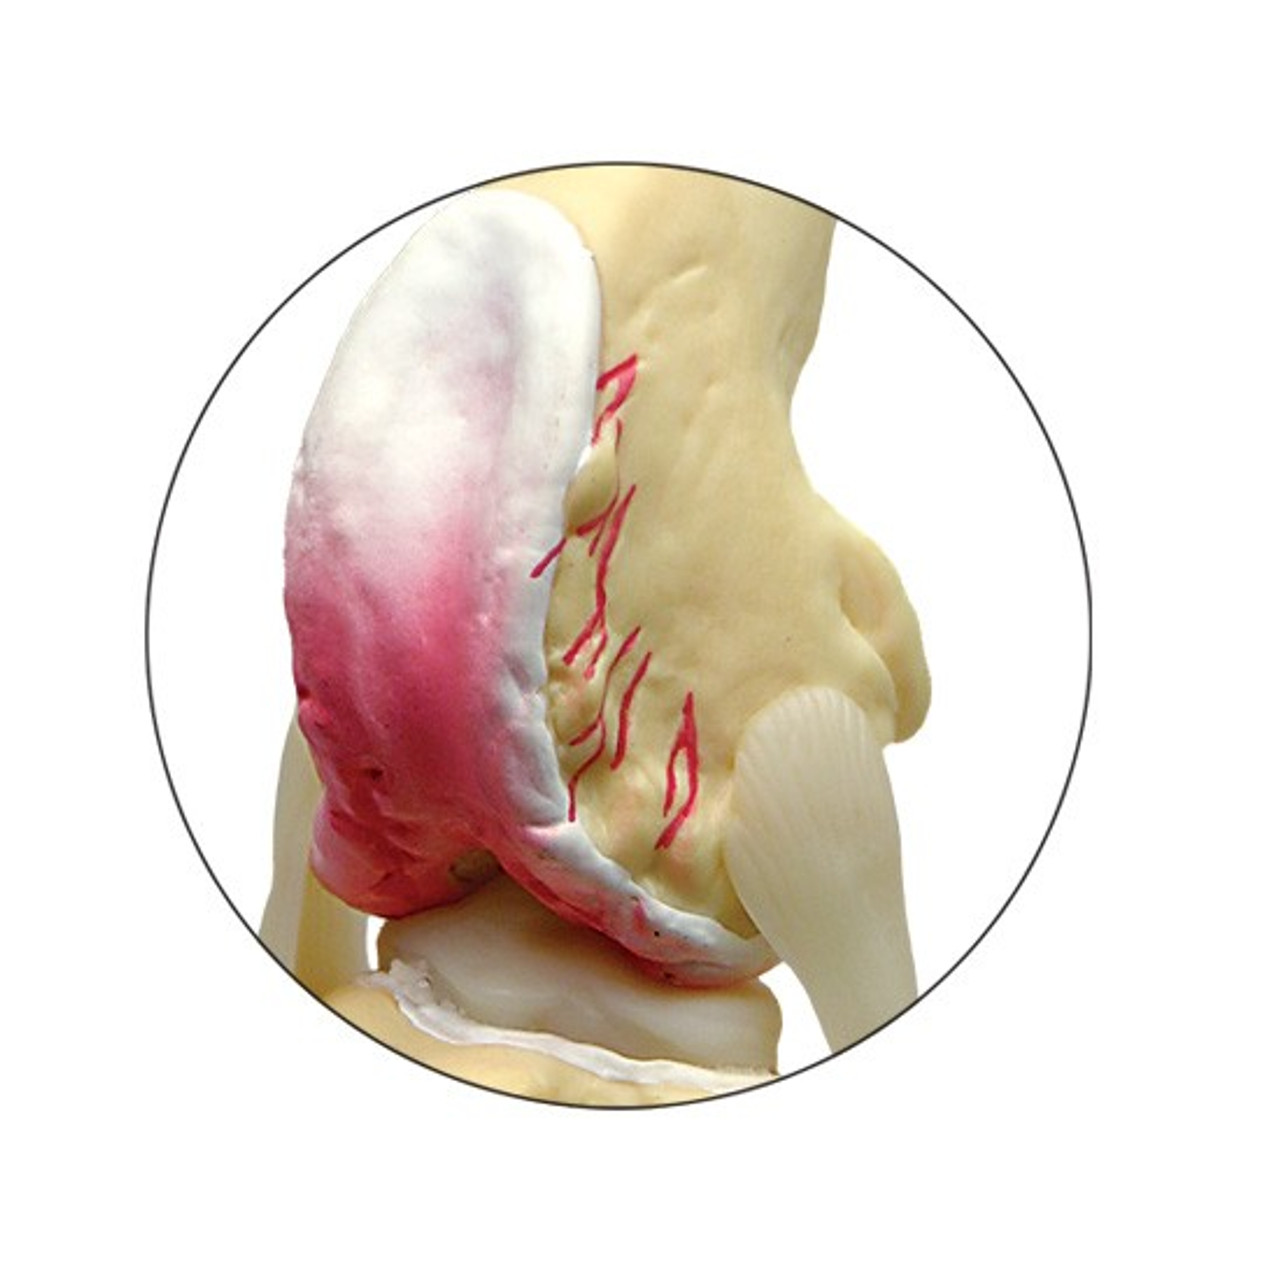 Canine Knee Model - Close up